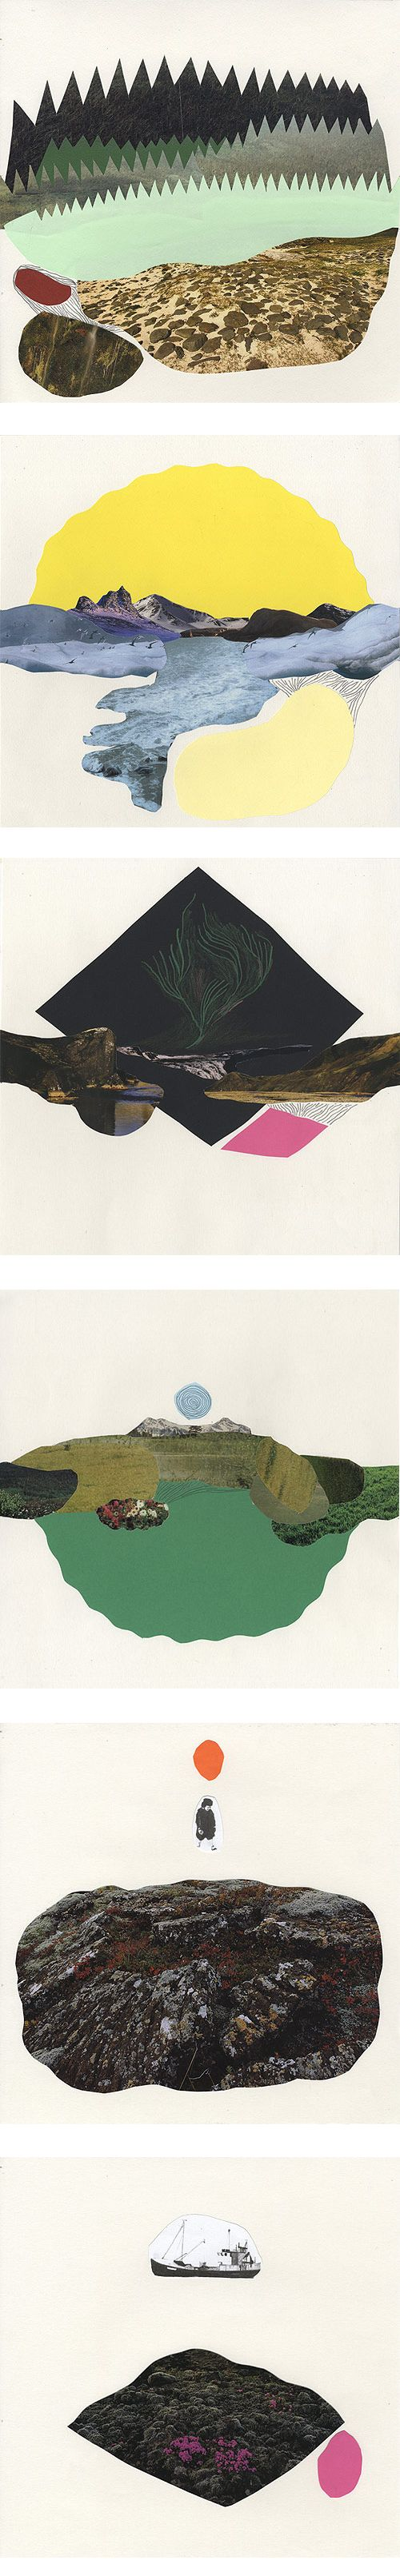 Iceland inspired collage by Tom Edwards Via THE ART CAKE